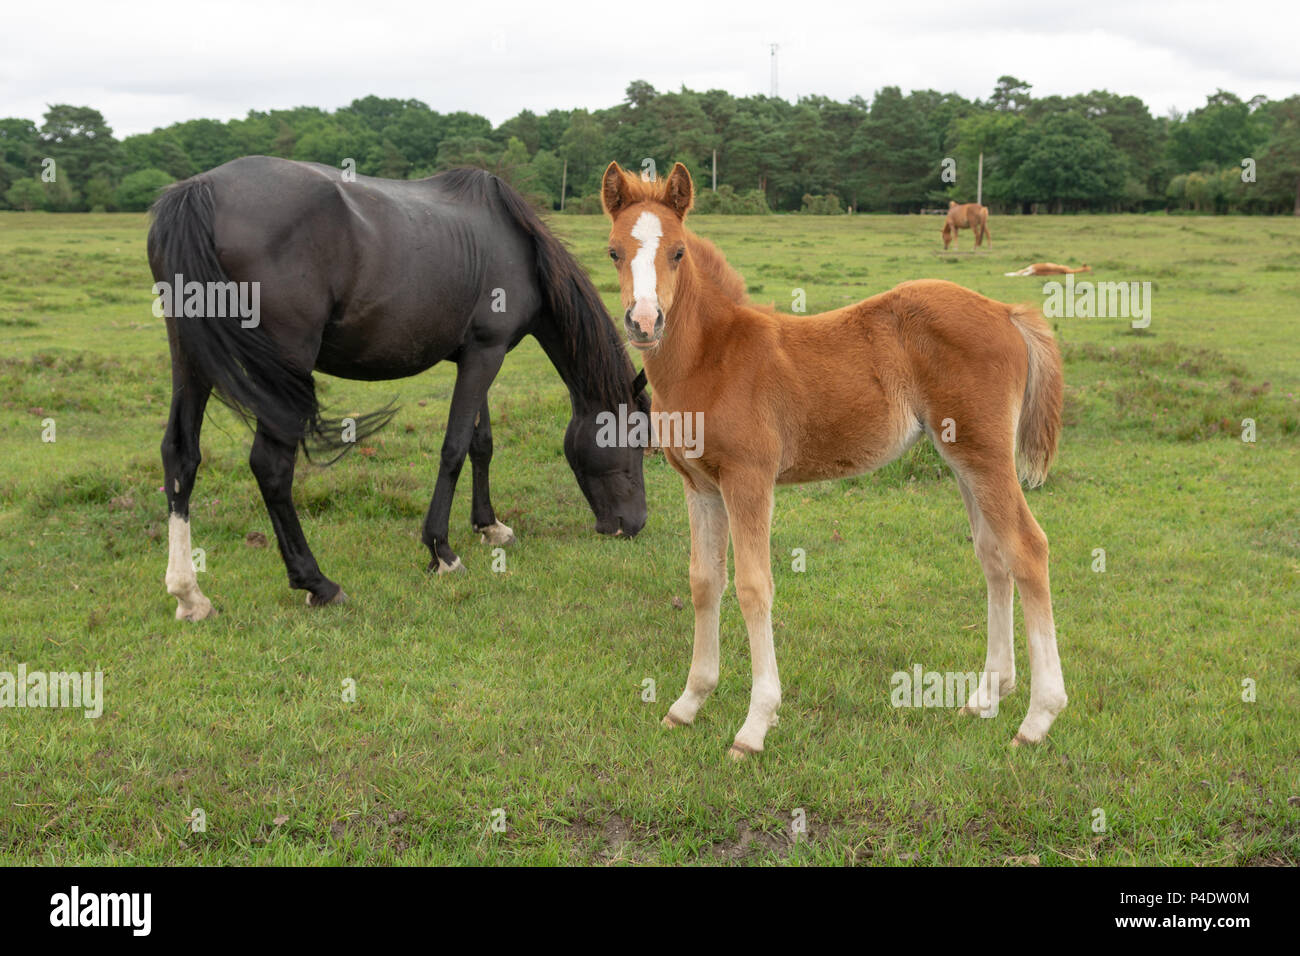 Fawn coloured foal with its black mother pony in the New Forest south of England national park, UK - Stock Image